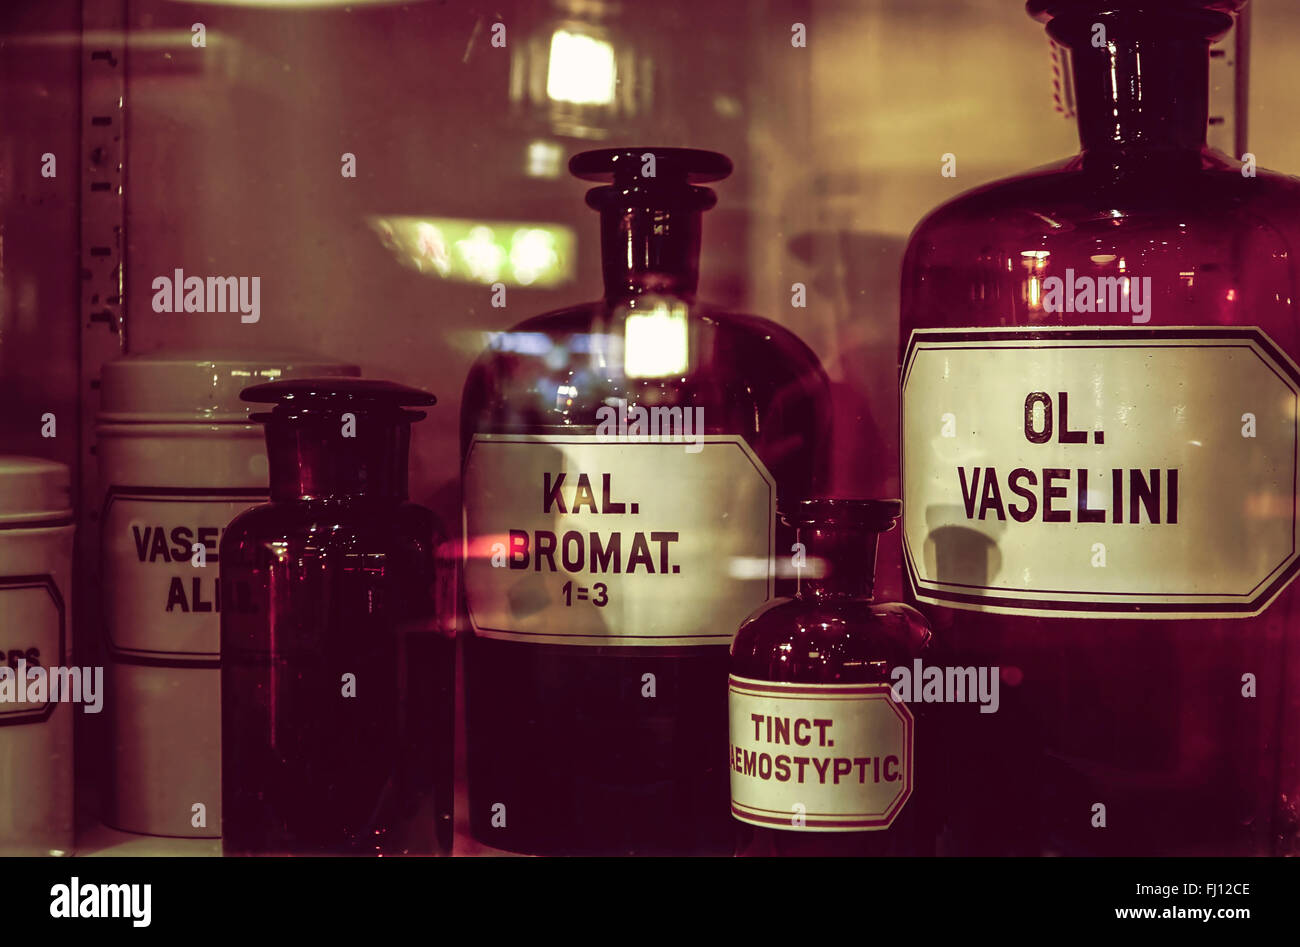 Old apothecary bottles in an apothecary cabinet Stock Photo